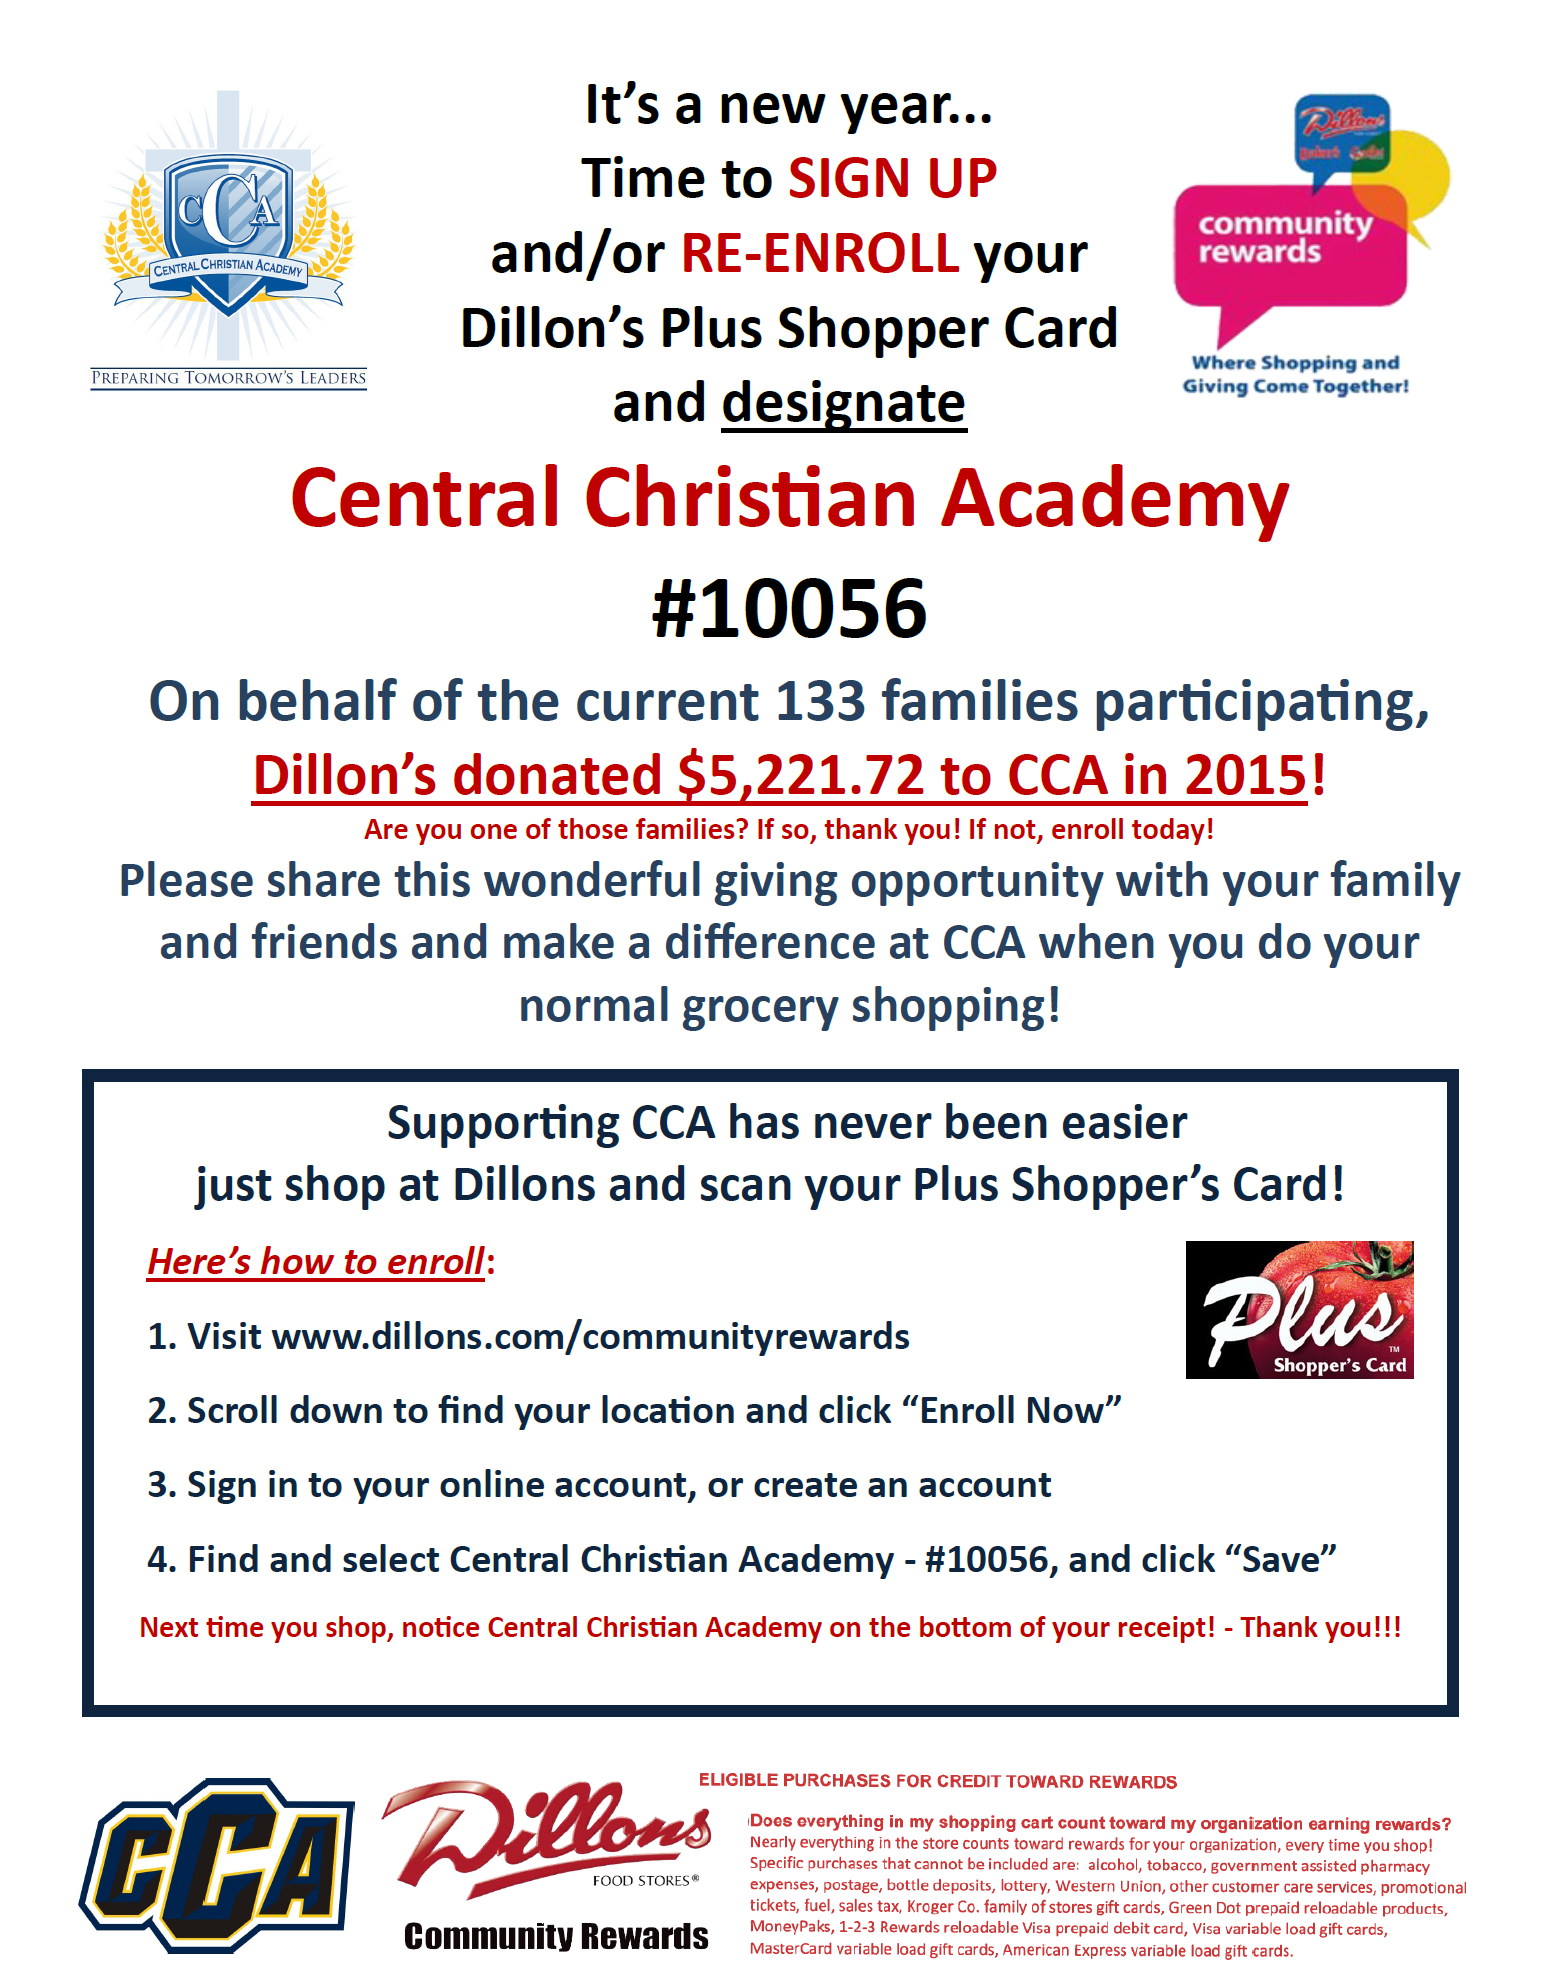 Enroll or Re-enroll in Dillons Community Rewards TODAY for CCA!